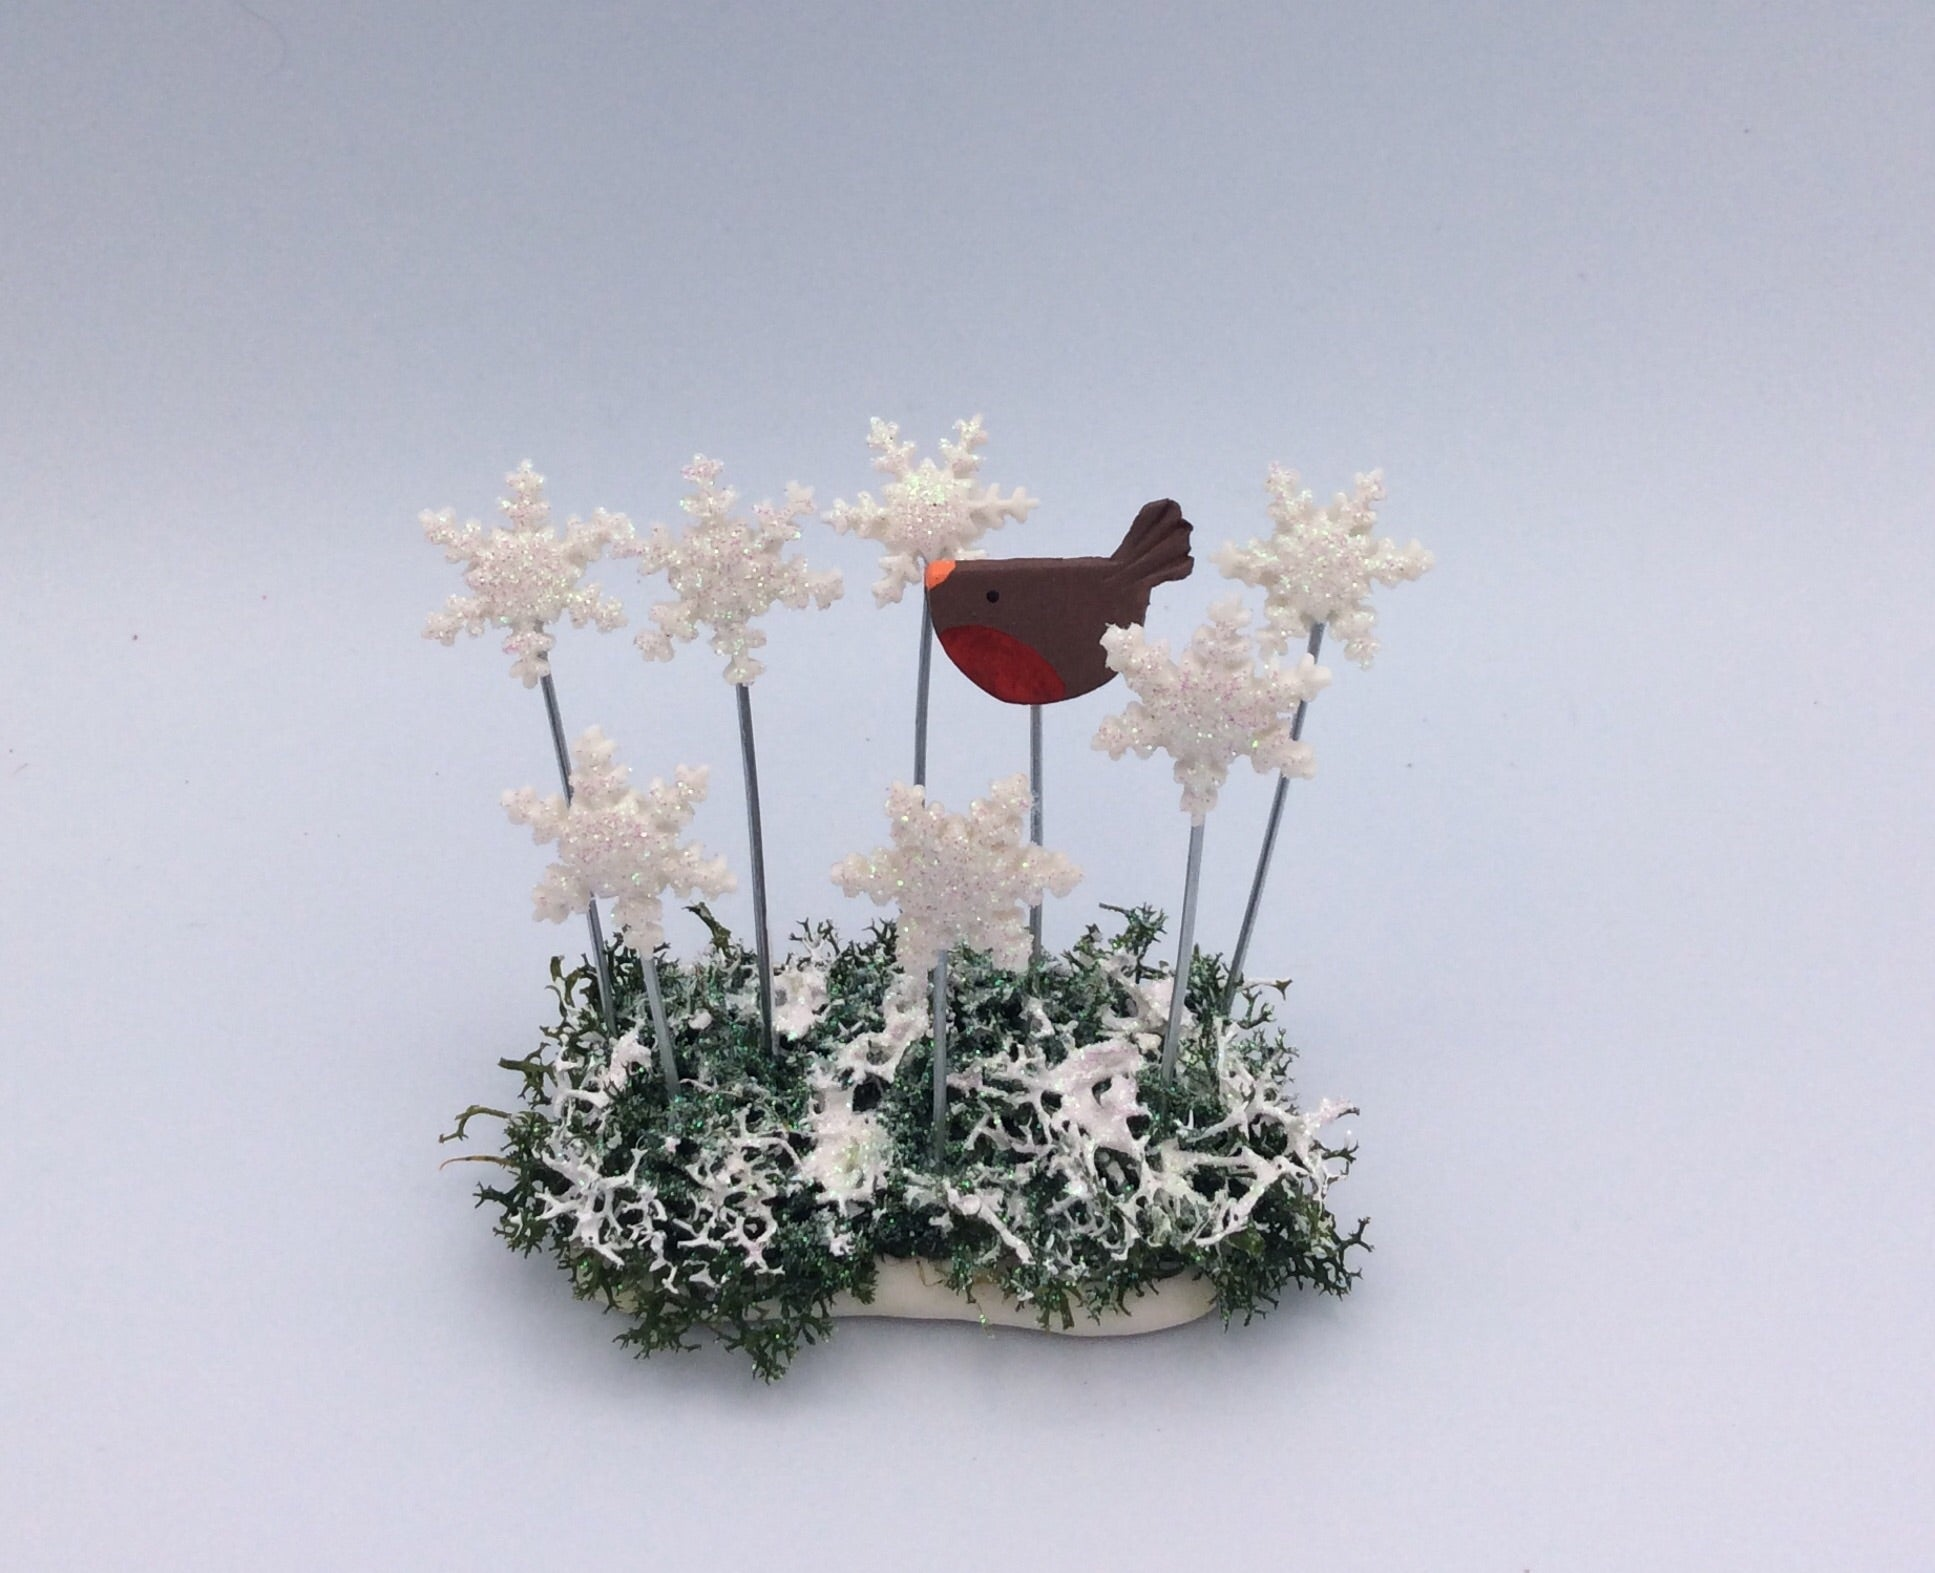 Robin and snowflakes scene oval base